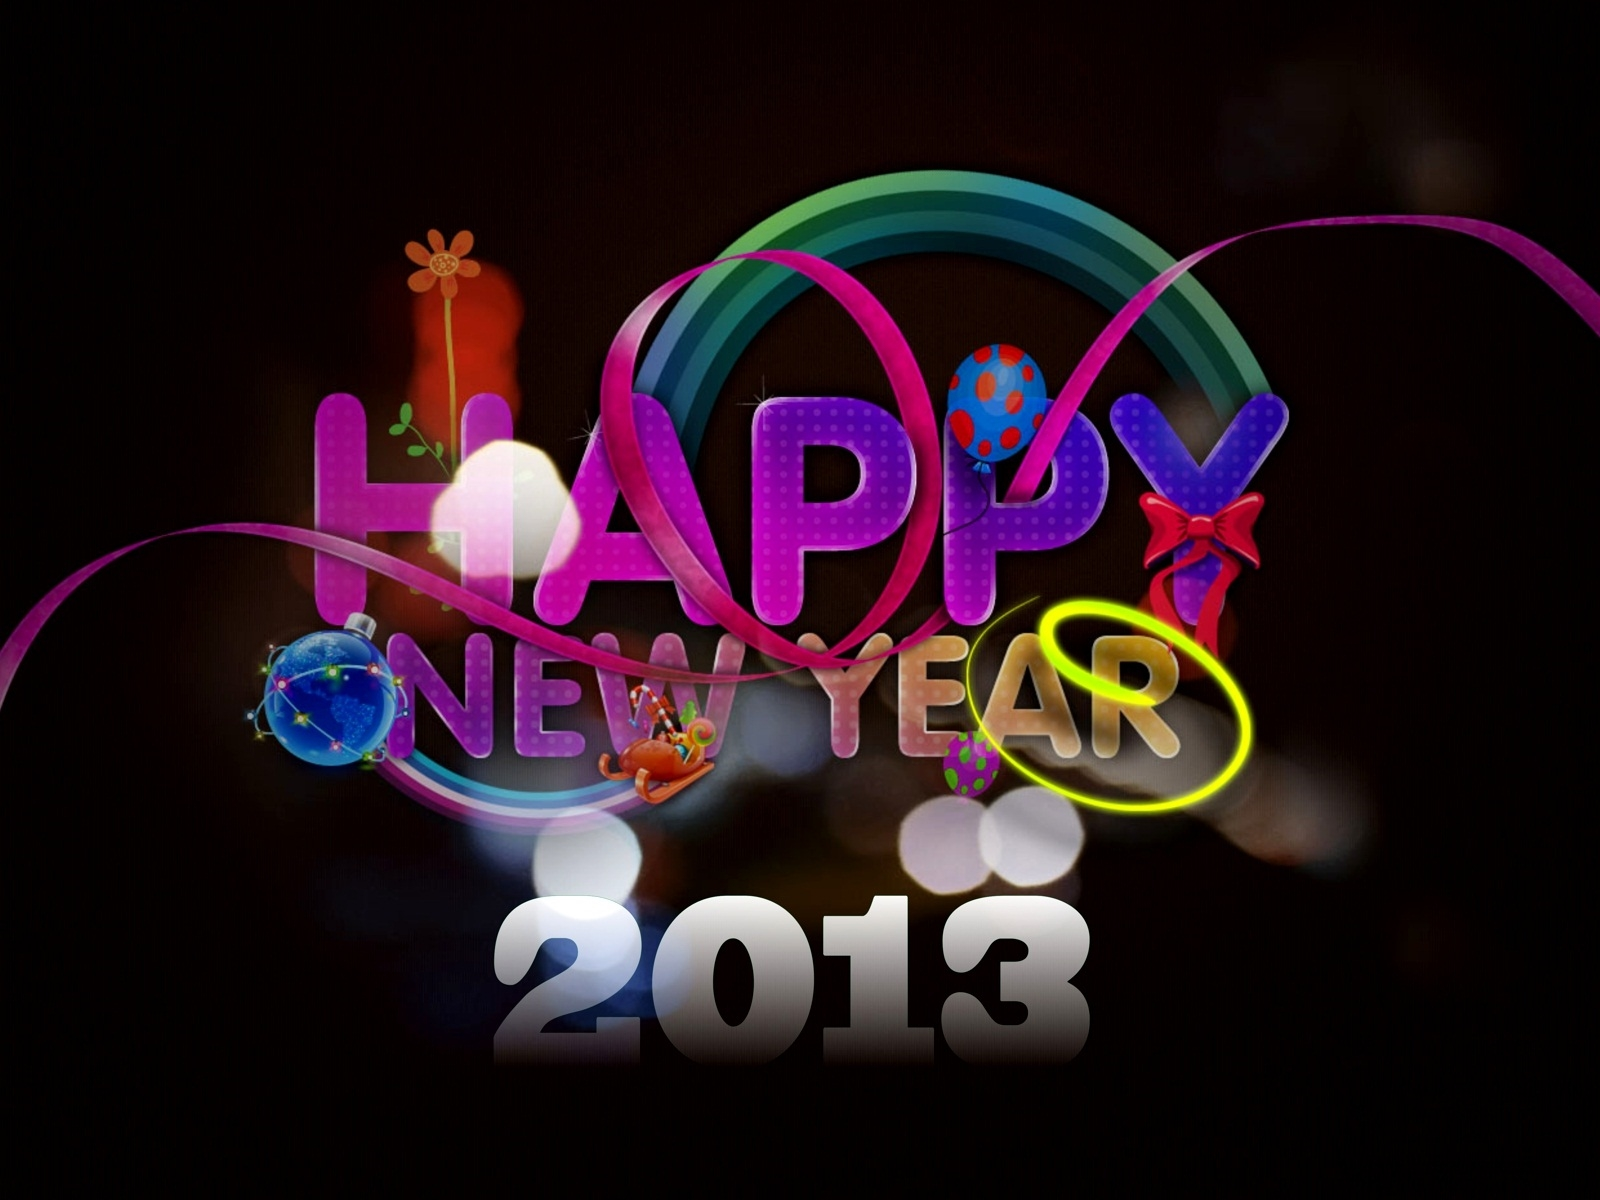 Free New Year HD Wallpapers 2013